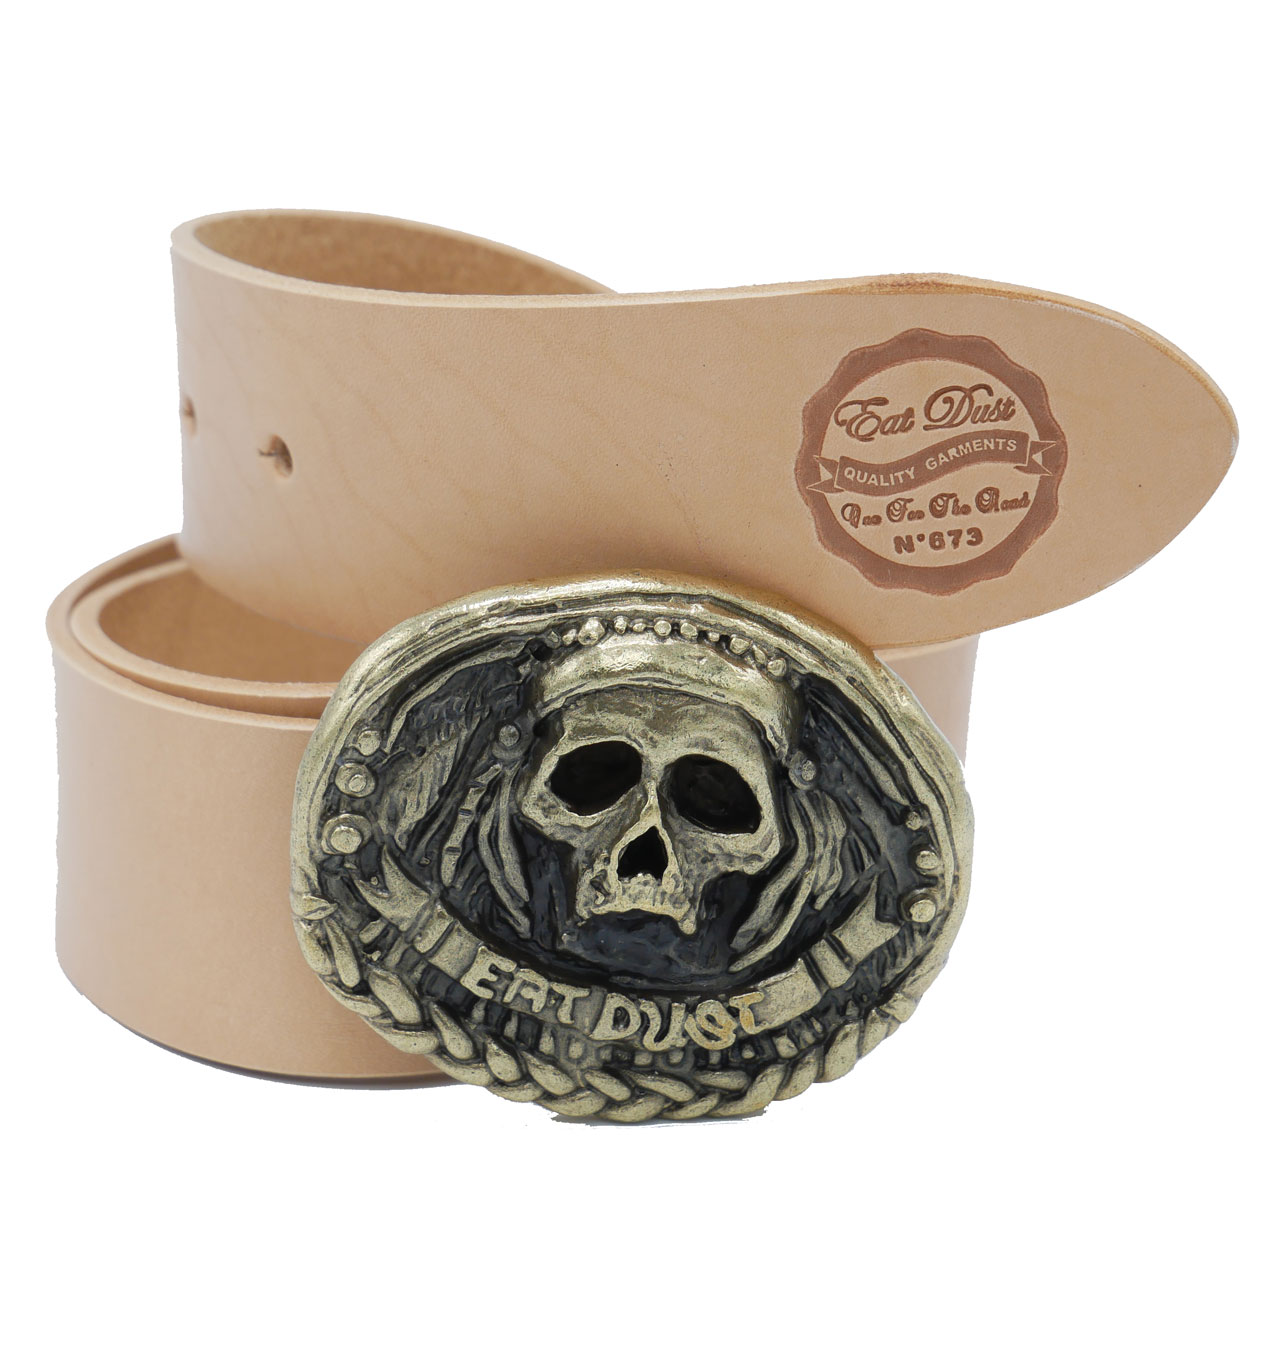 Eat Dust - Coleman Skull Leather Belt - Natural